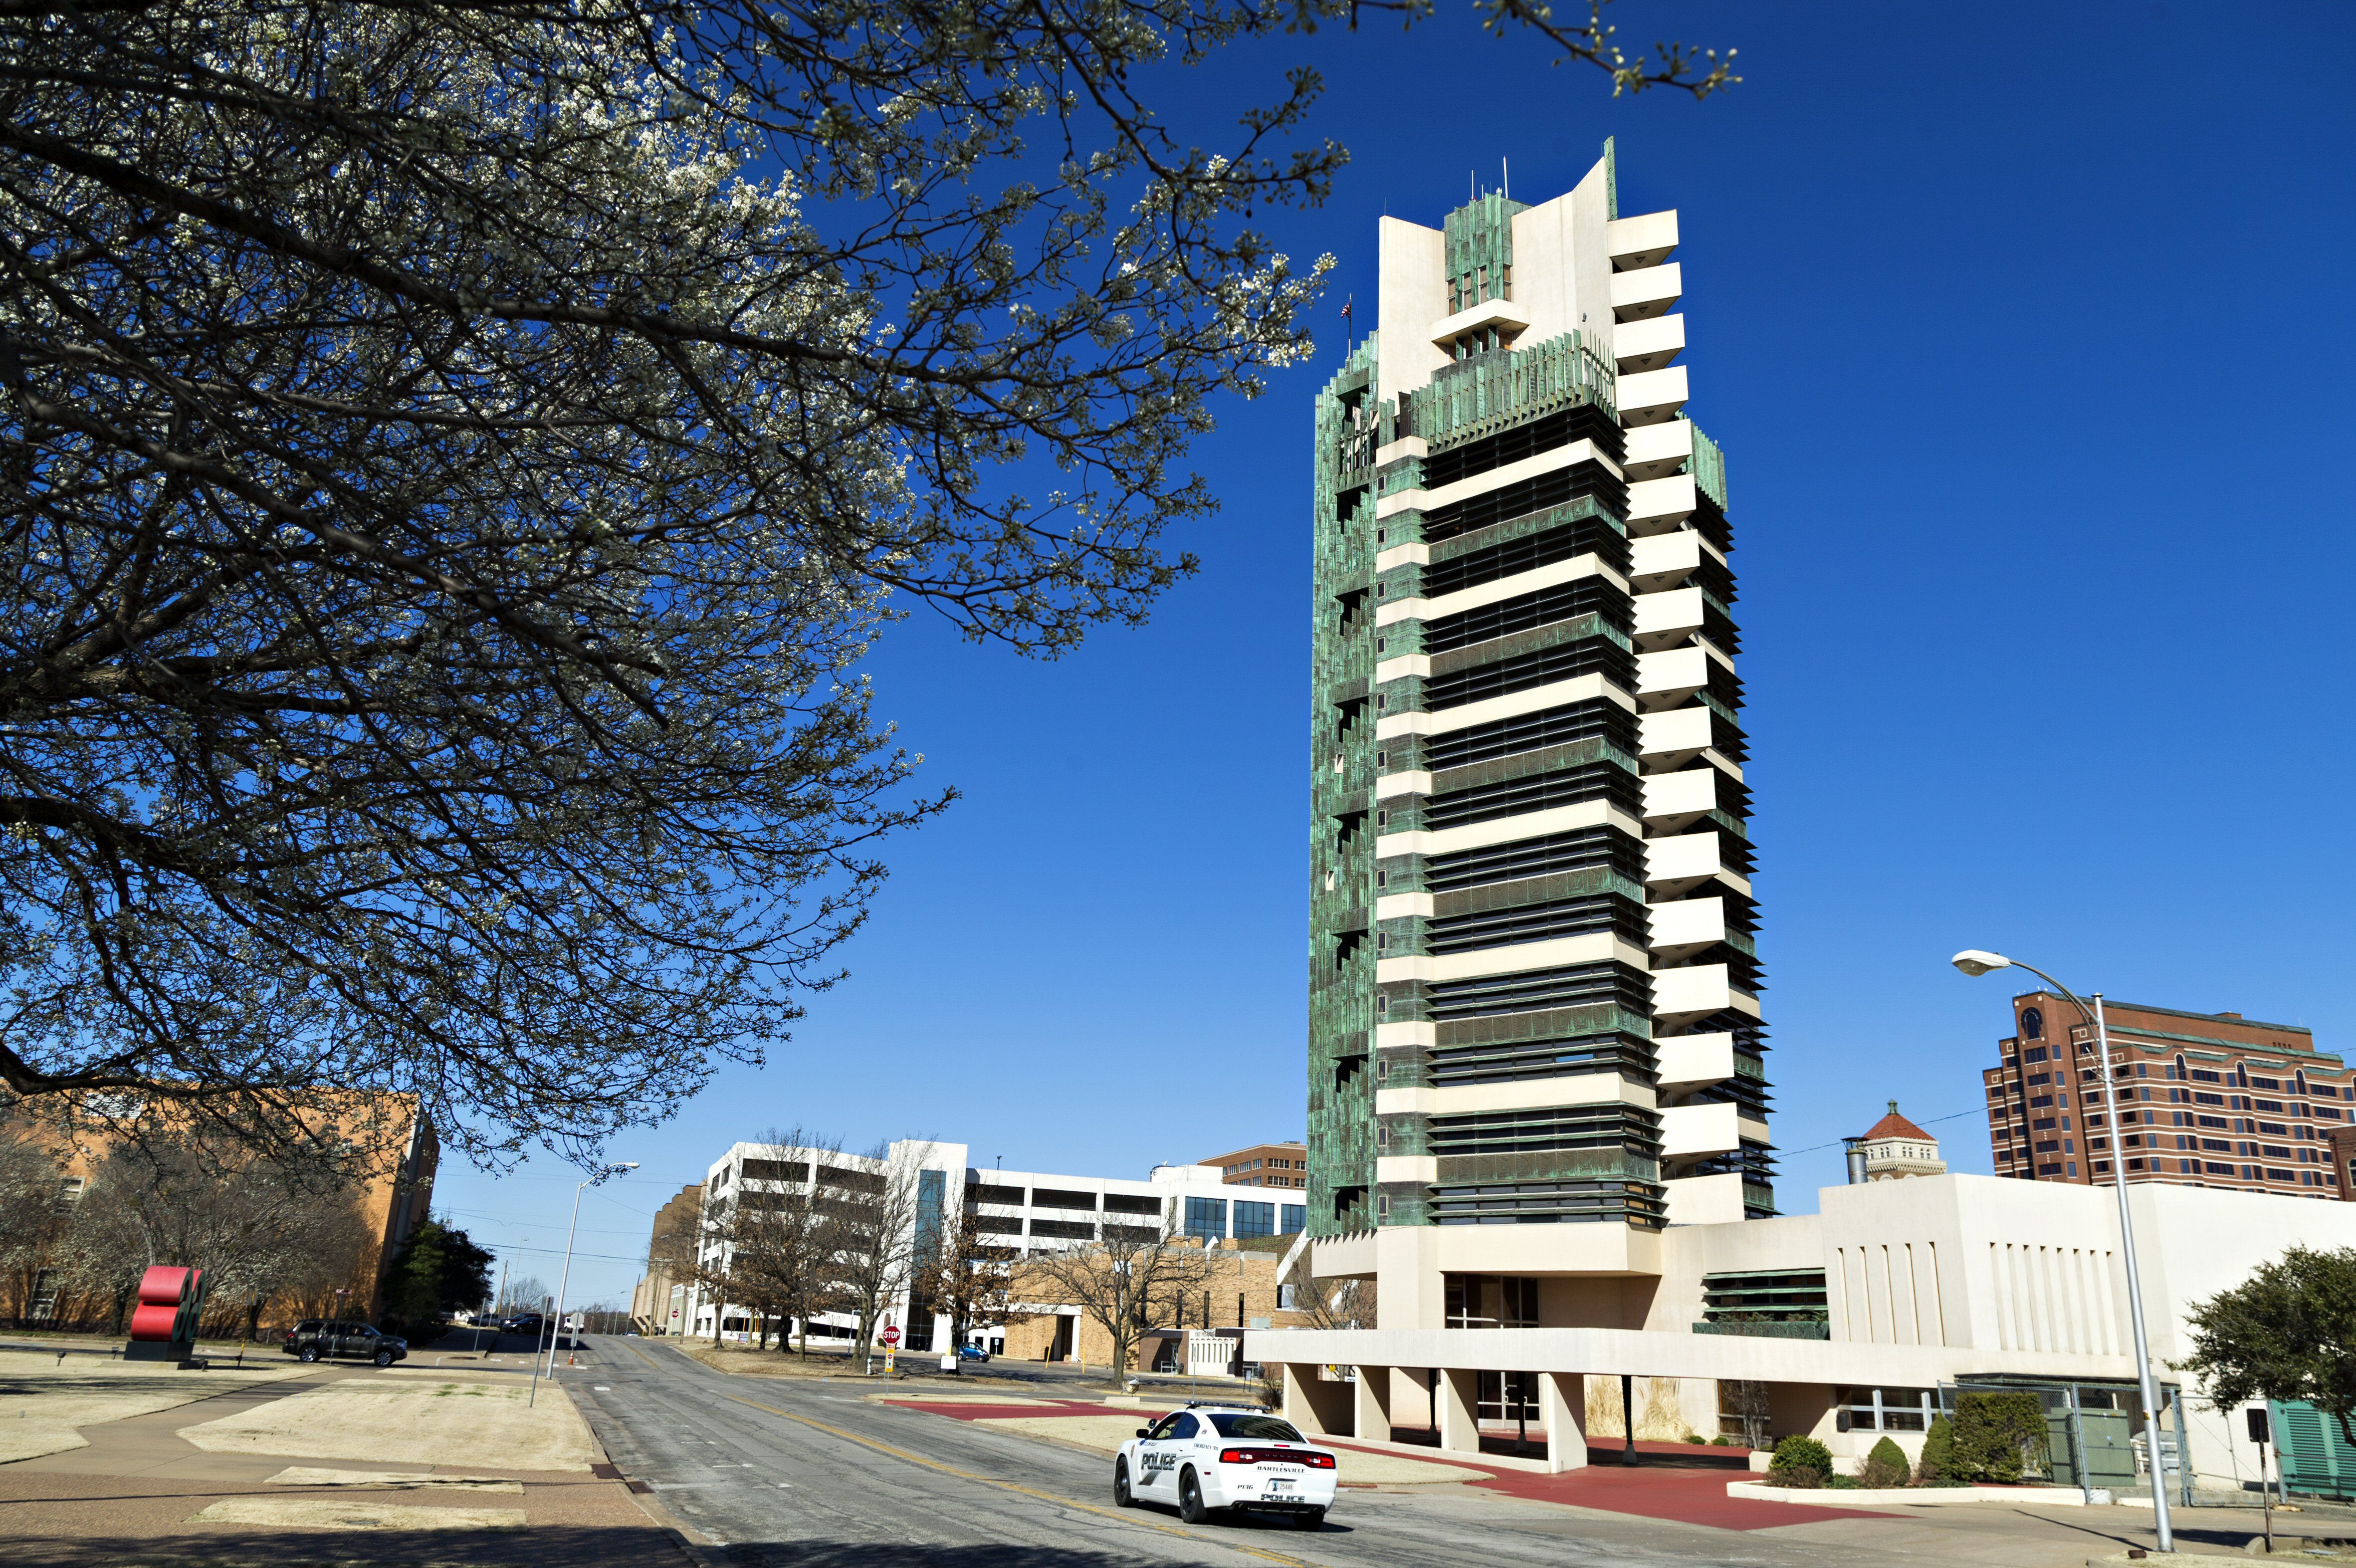 A spectacular tower building, multiple stories of copper and concrete in the downtown area of a very small city in Oklahoma.